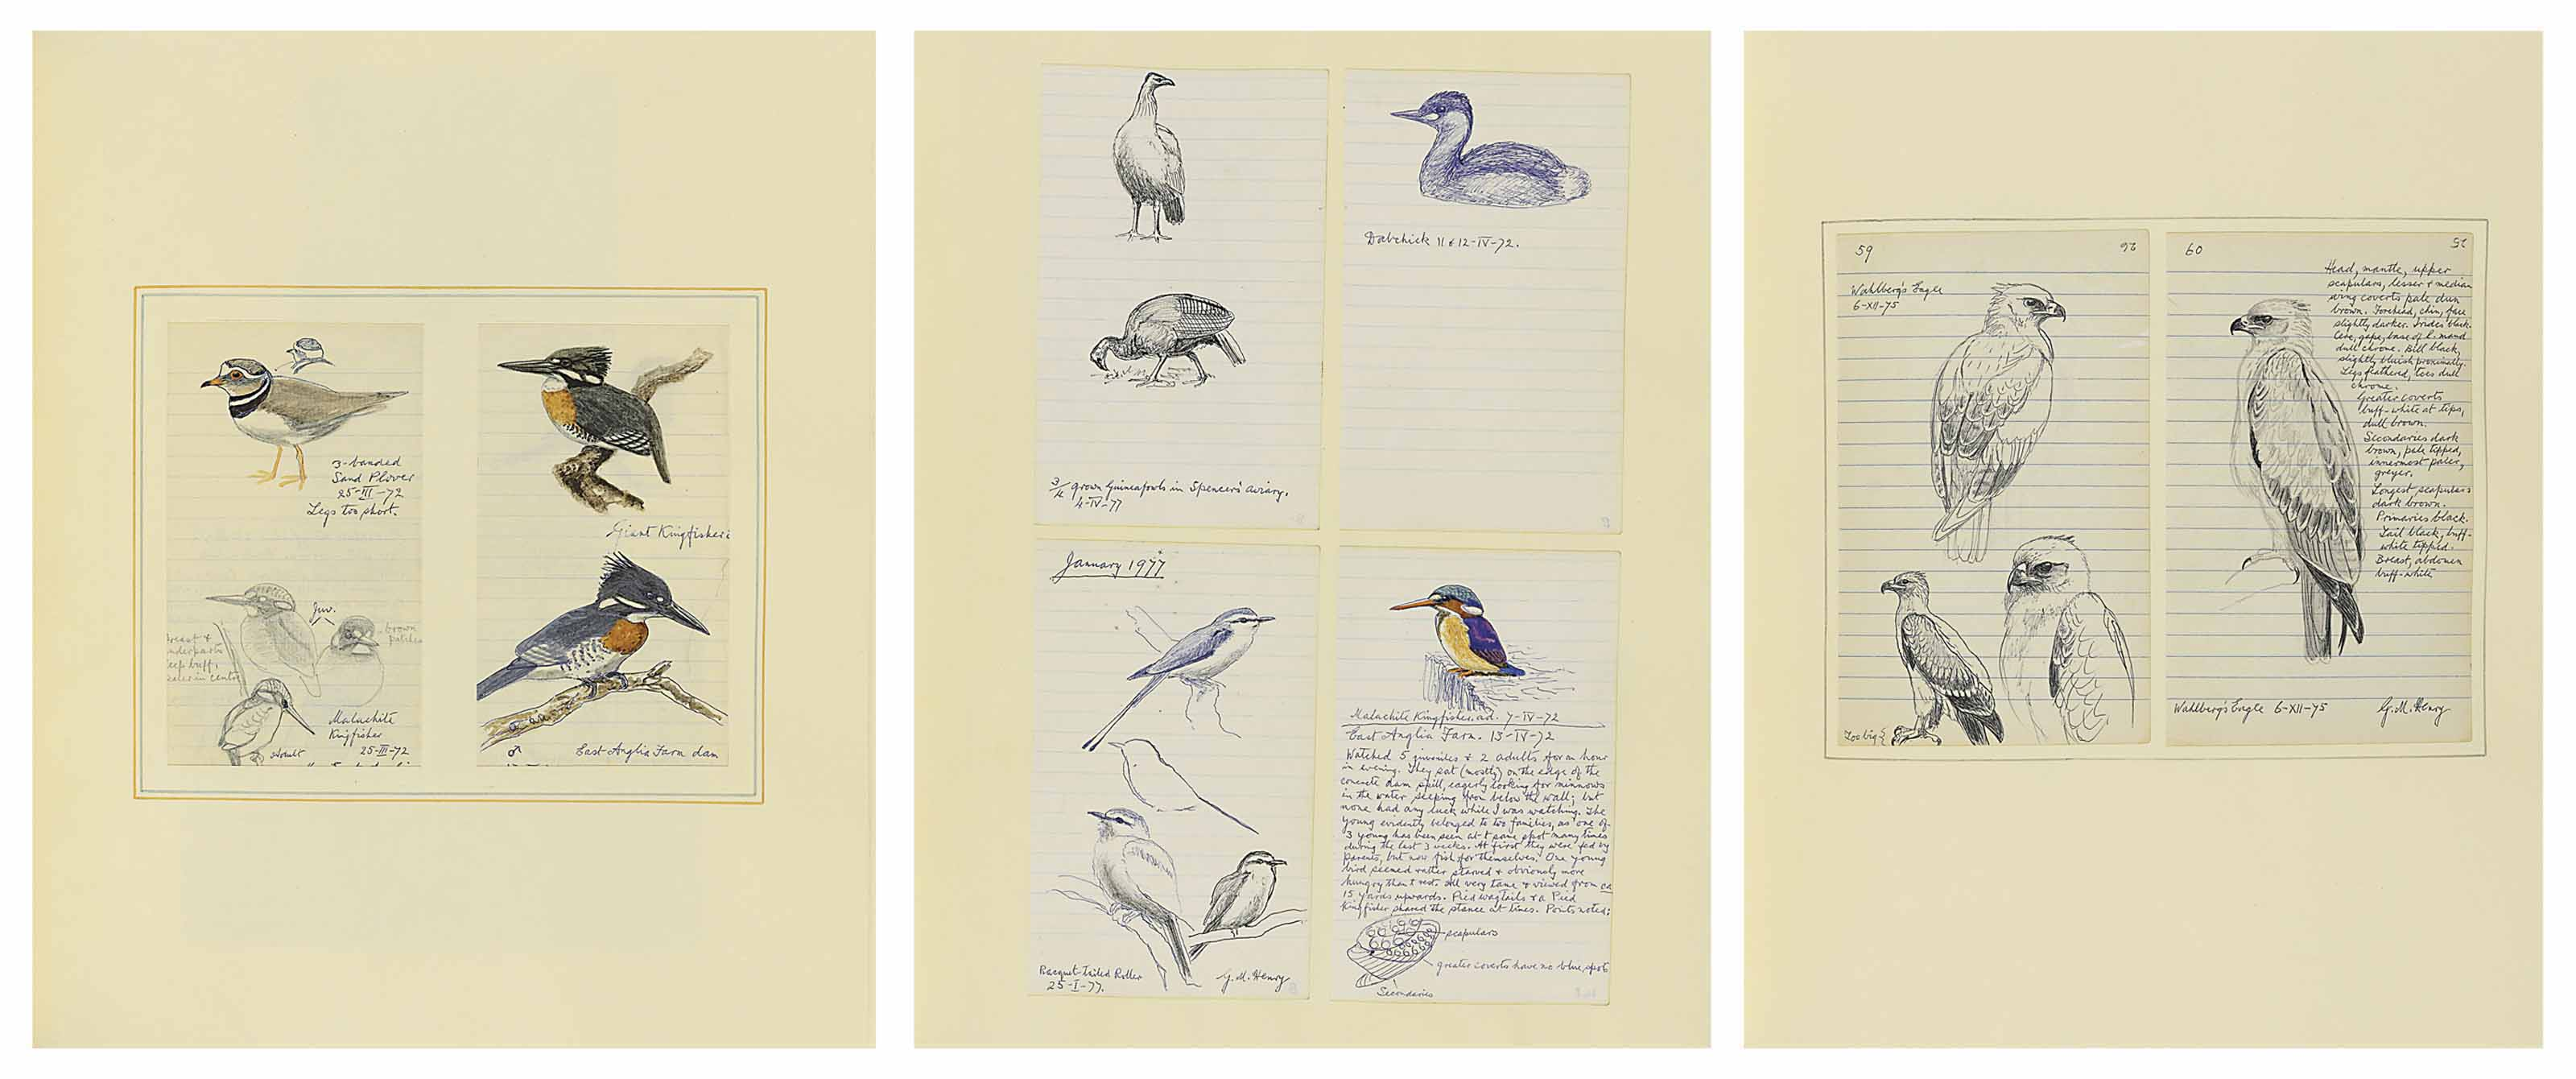 Collected field studies of English and Rhodesian birds, including: racket-tailed roller, black eagle, steppe buzzard, malachite kingfisher, dabchick, African scops owl and crested barbet